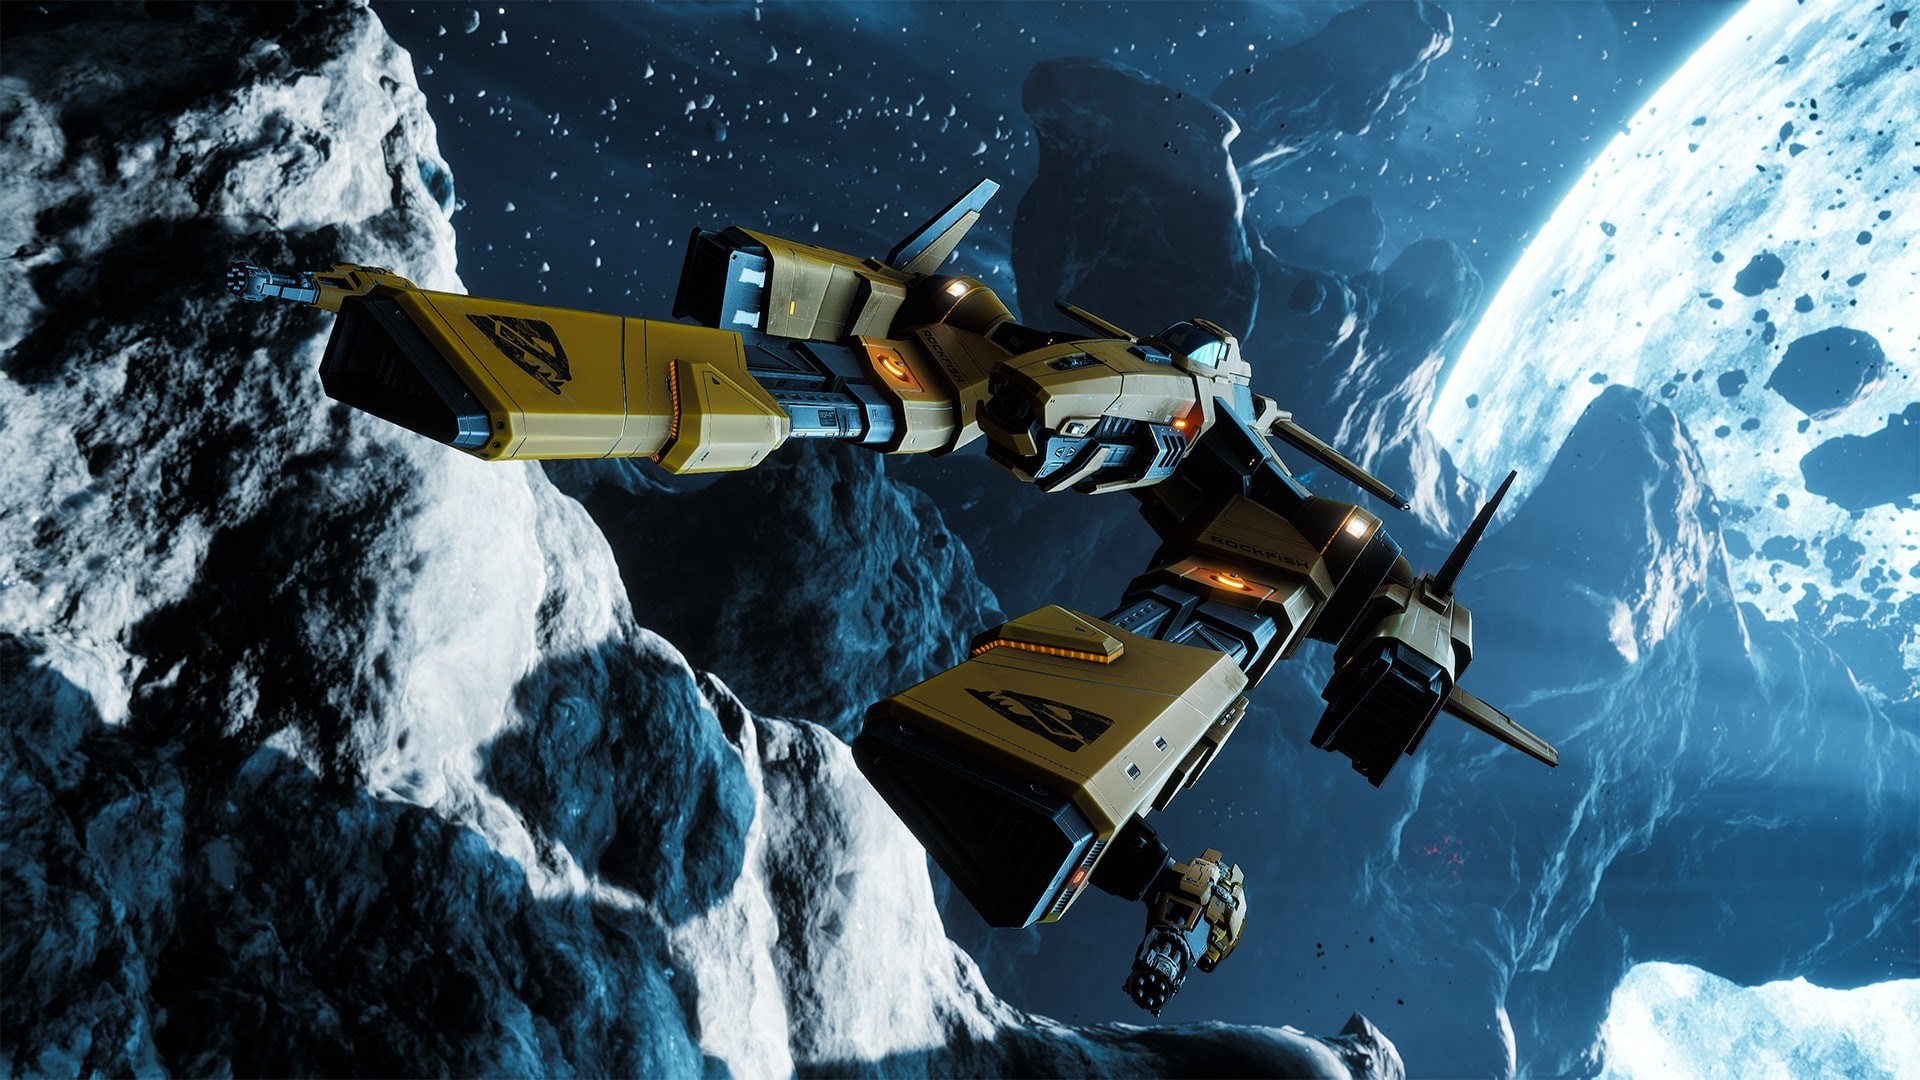 Open-world-sequel-Everspace-2-Early-Access-dated-for-this-December-2-1.jpg